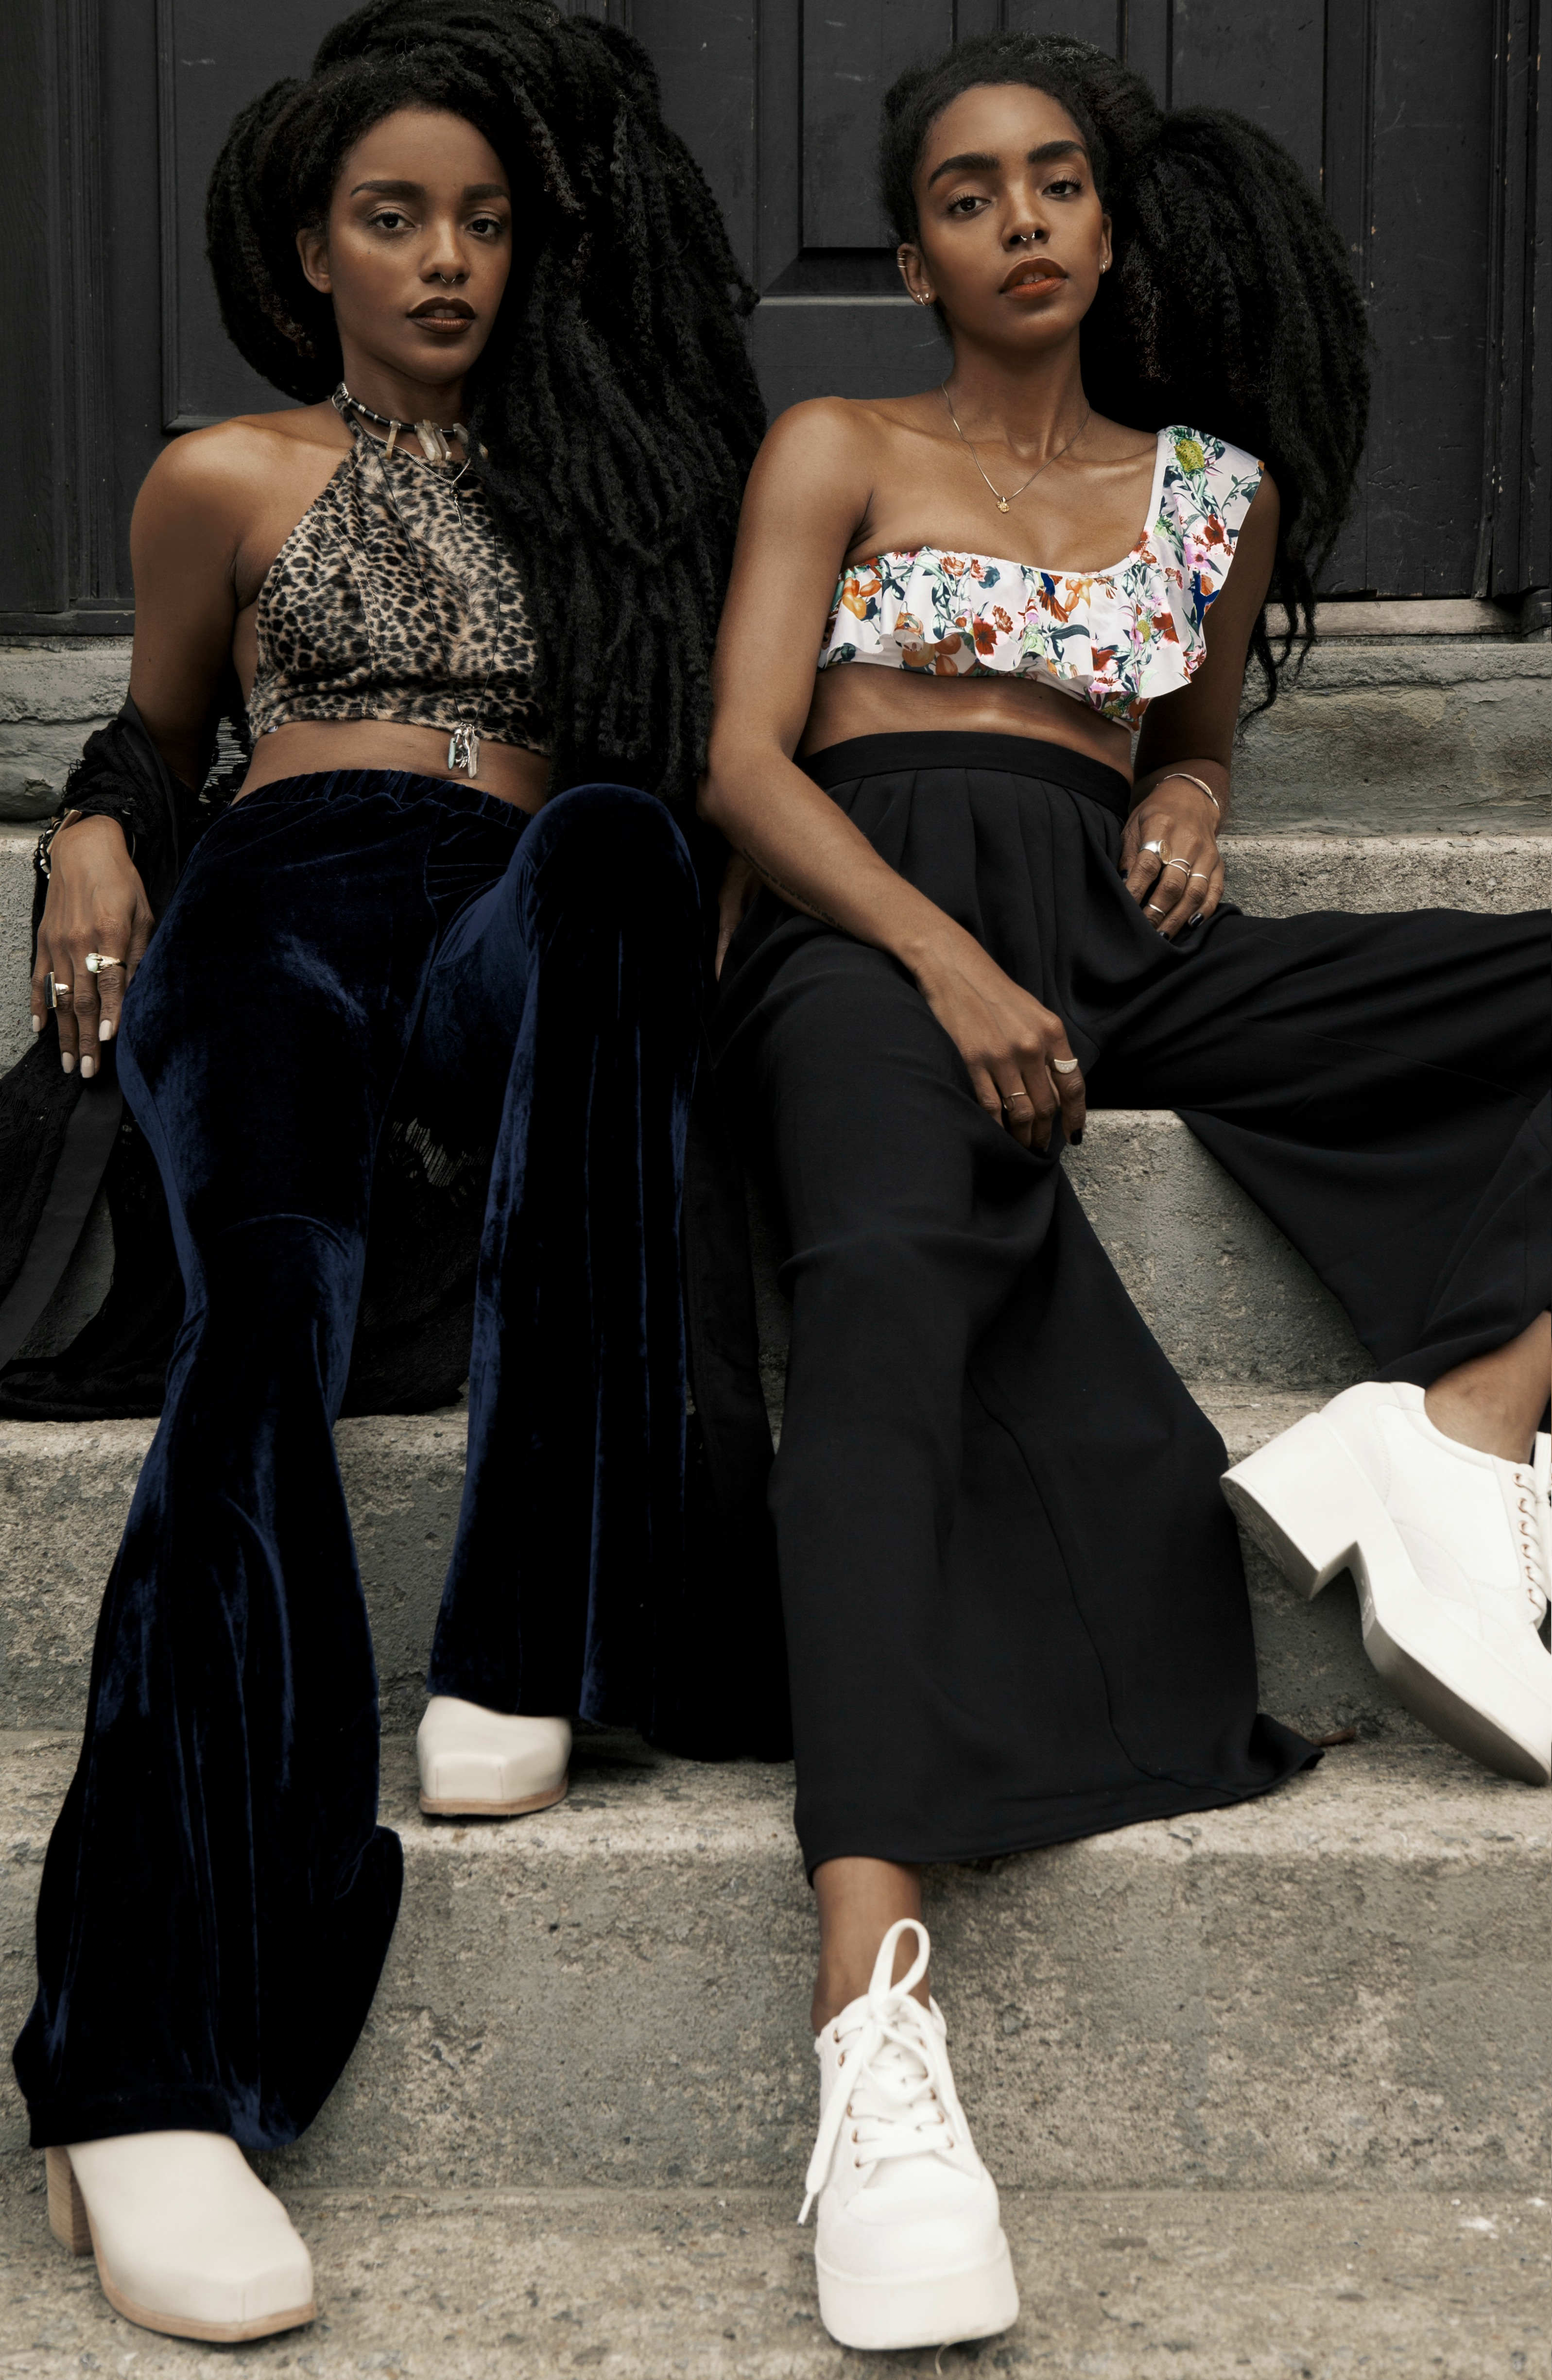 6 Sets of Natural Twins Slaying the Style Game | Black